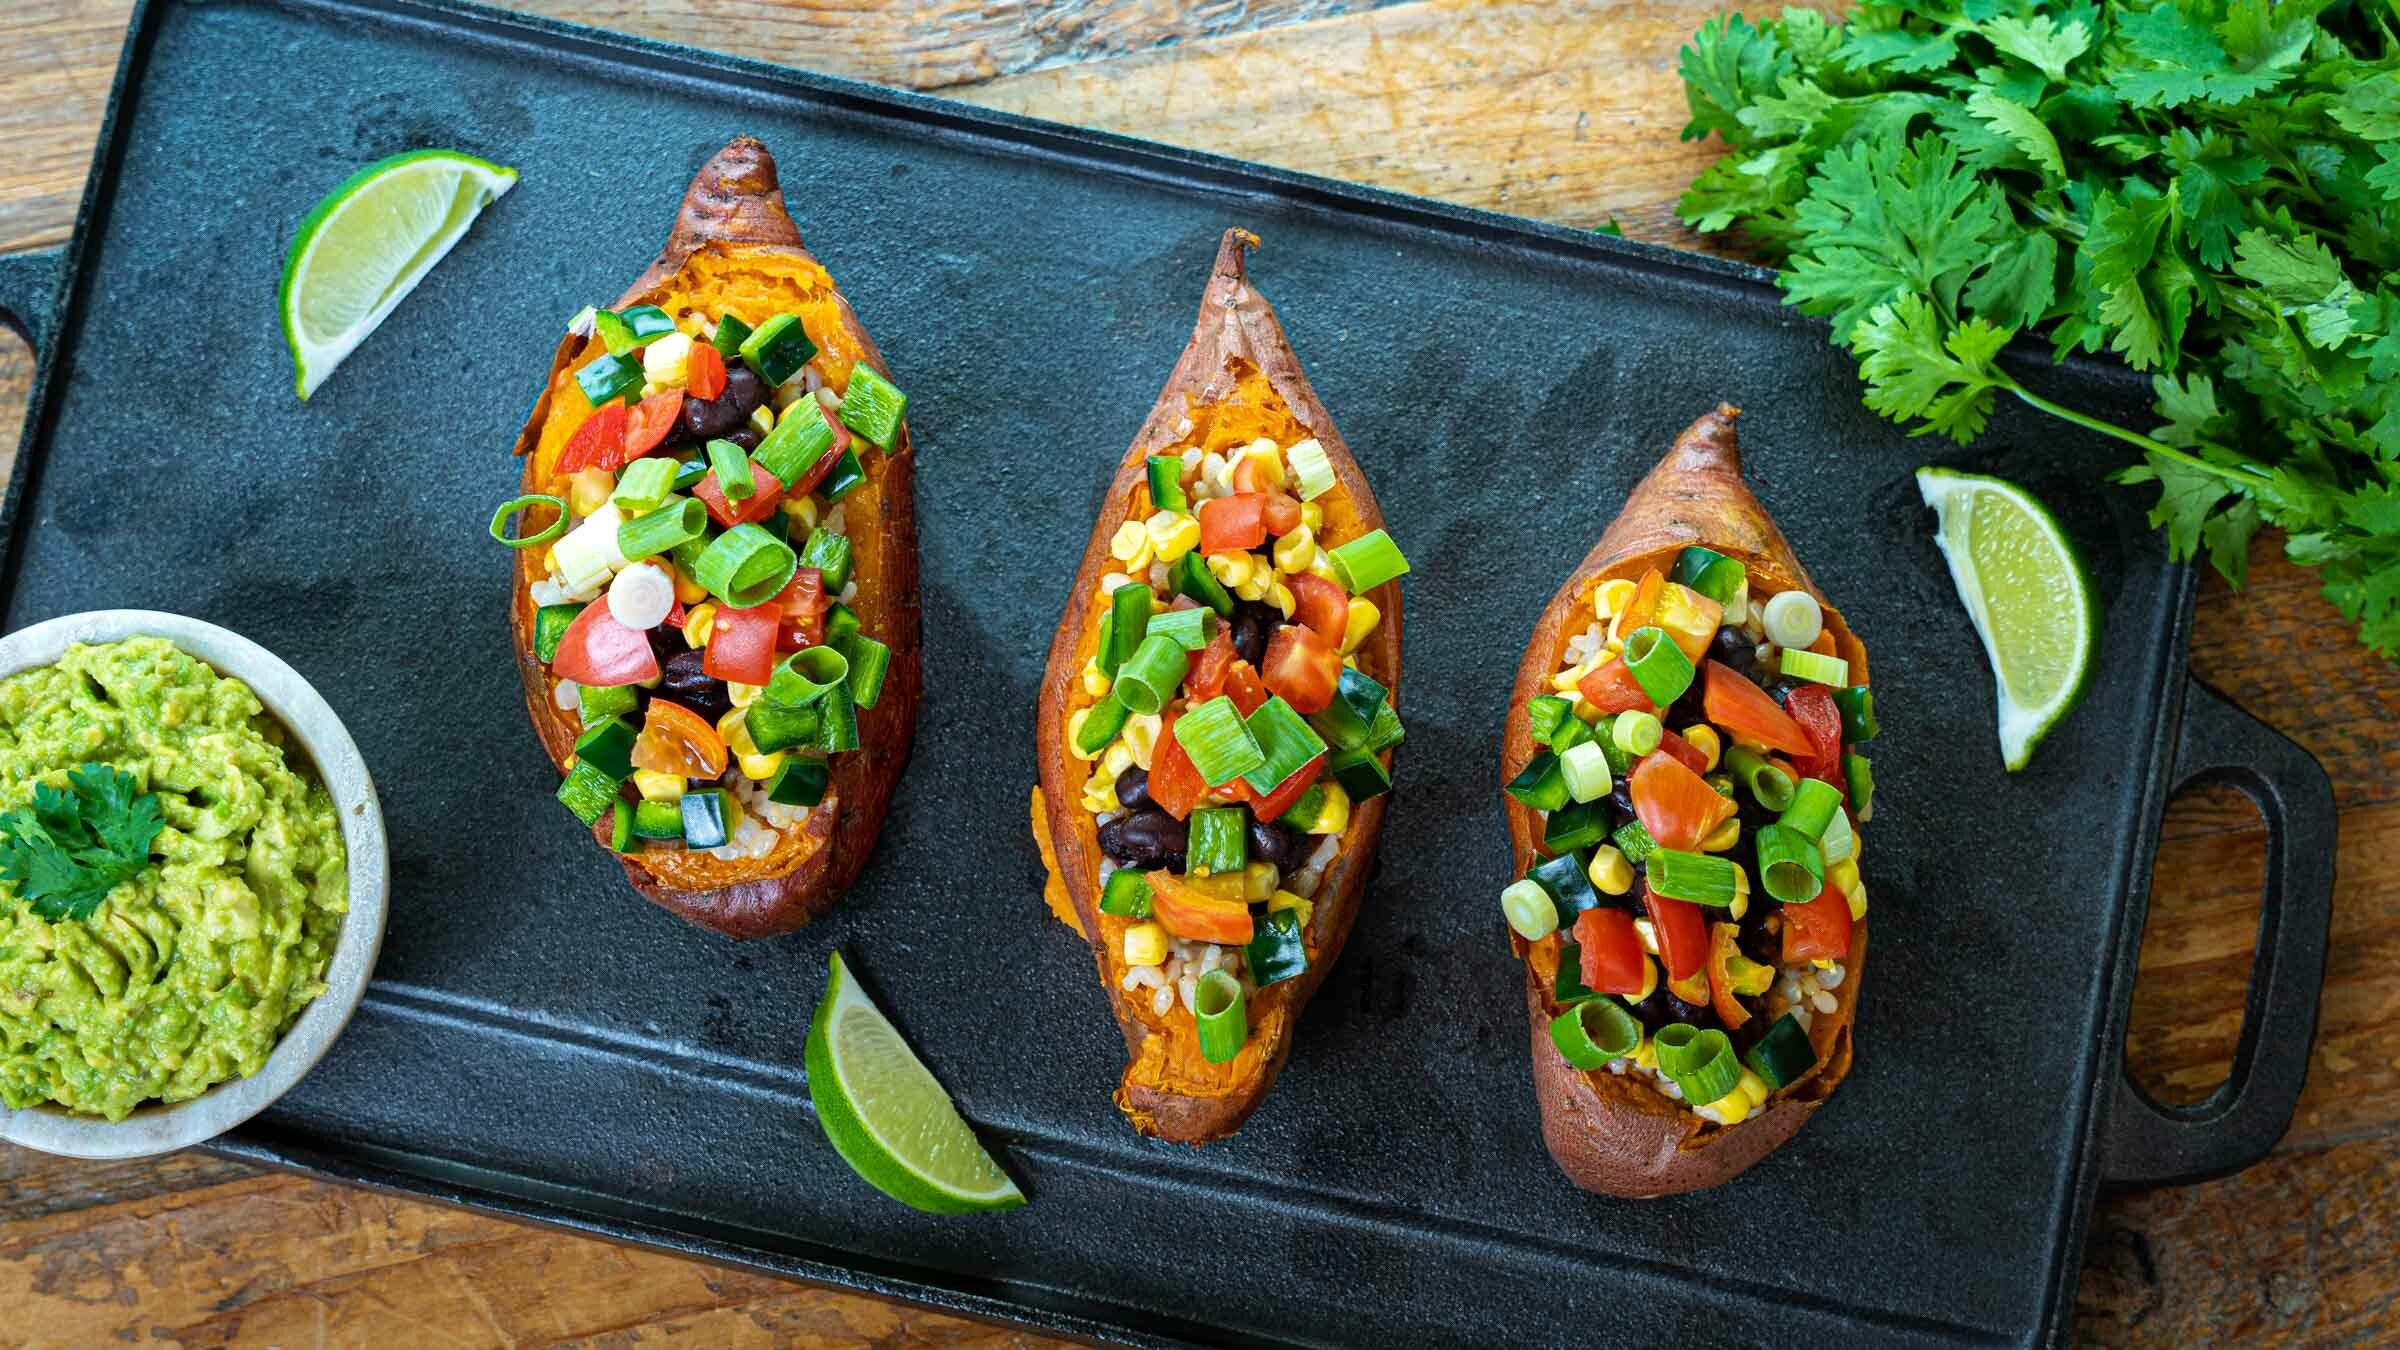 Stuffed sweet potatoes on tray